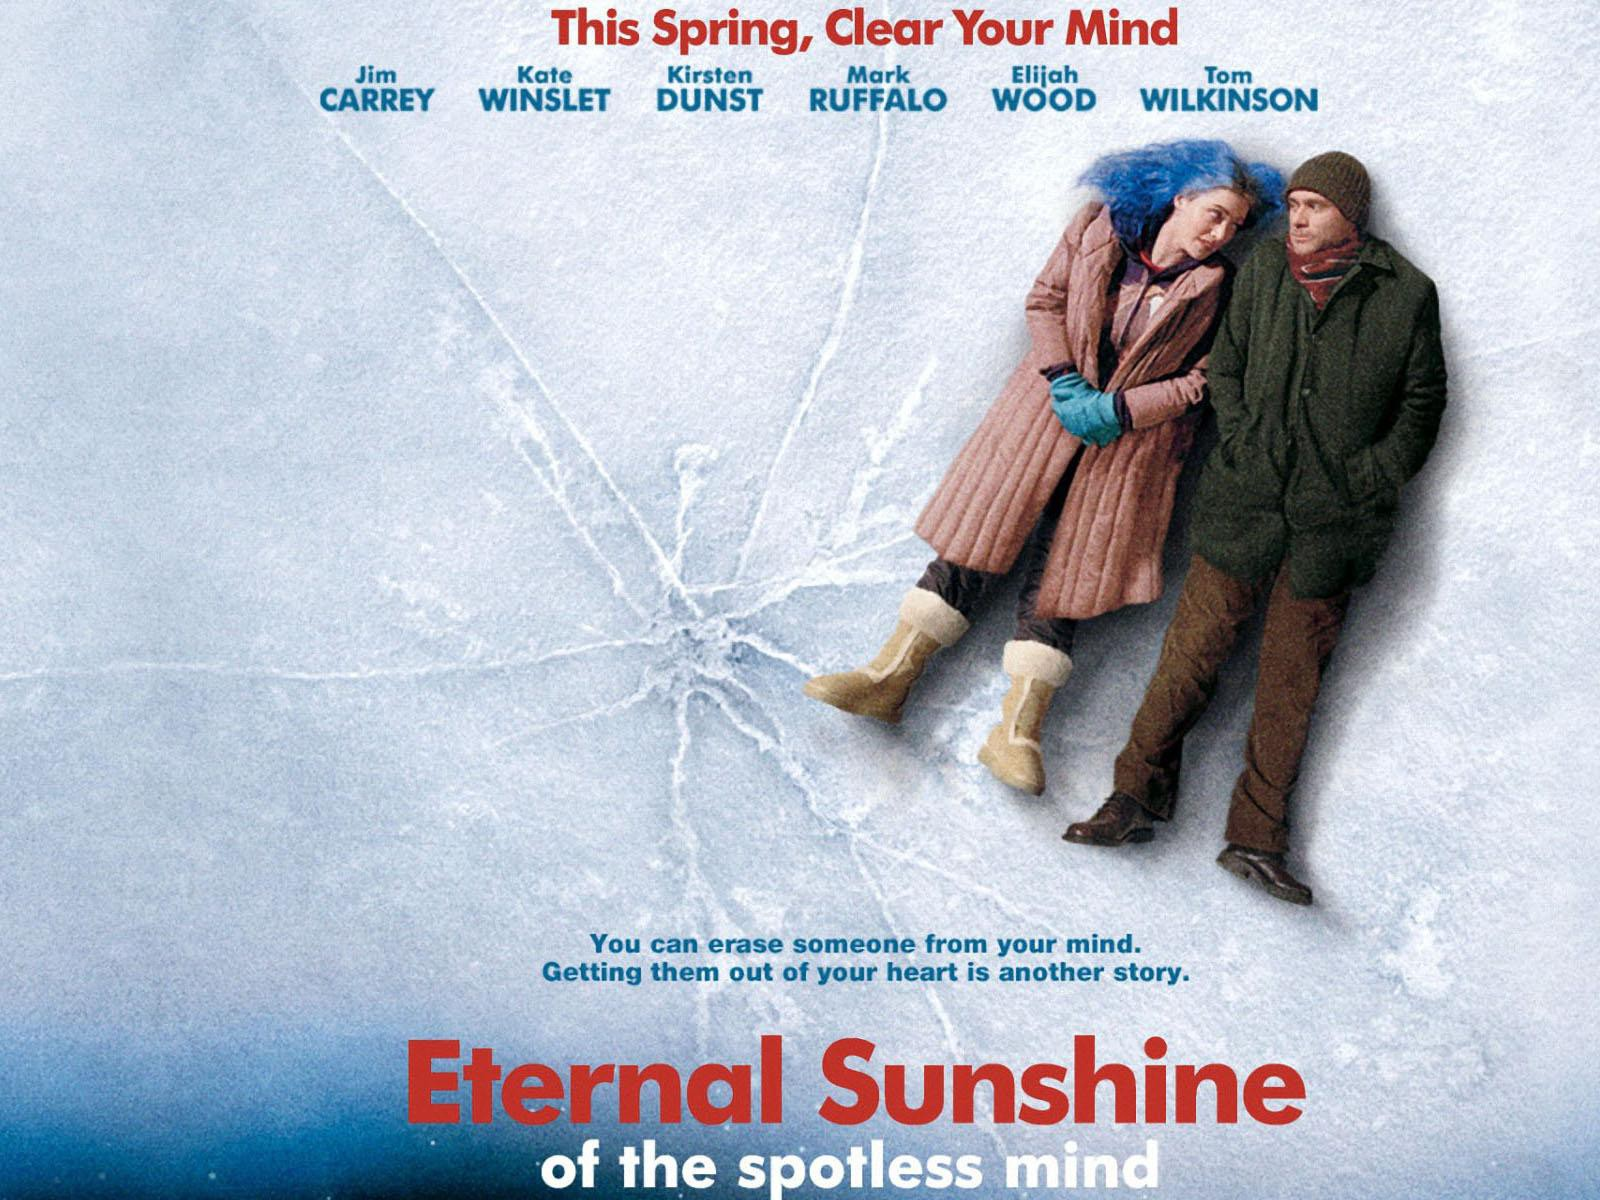 Eternal Sunshine of the Spotless Mind, a science fiction romantic drama